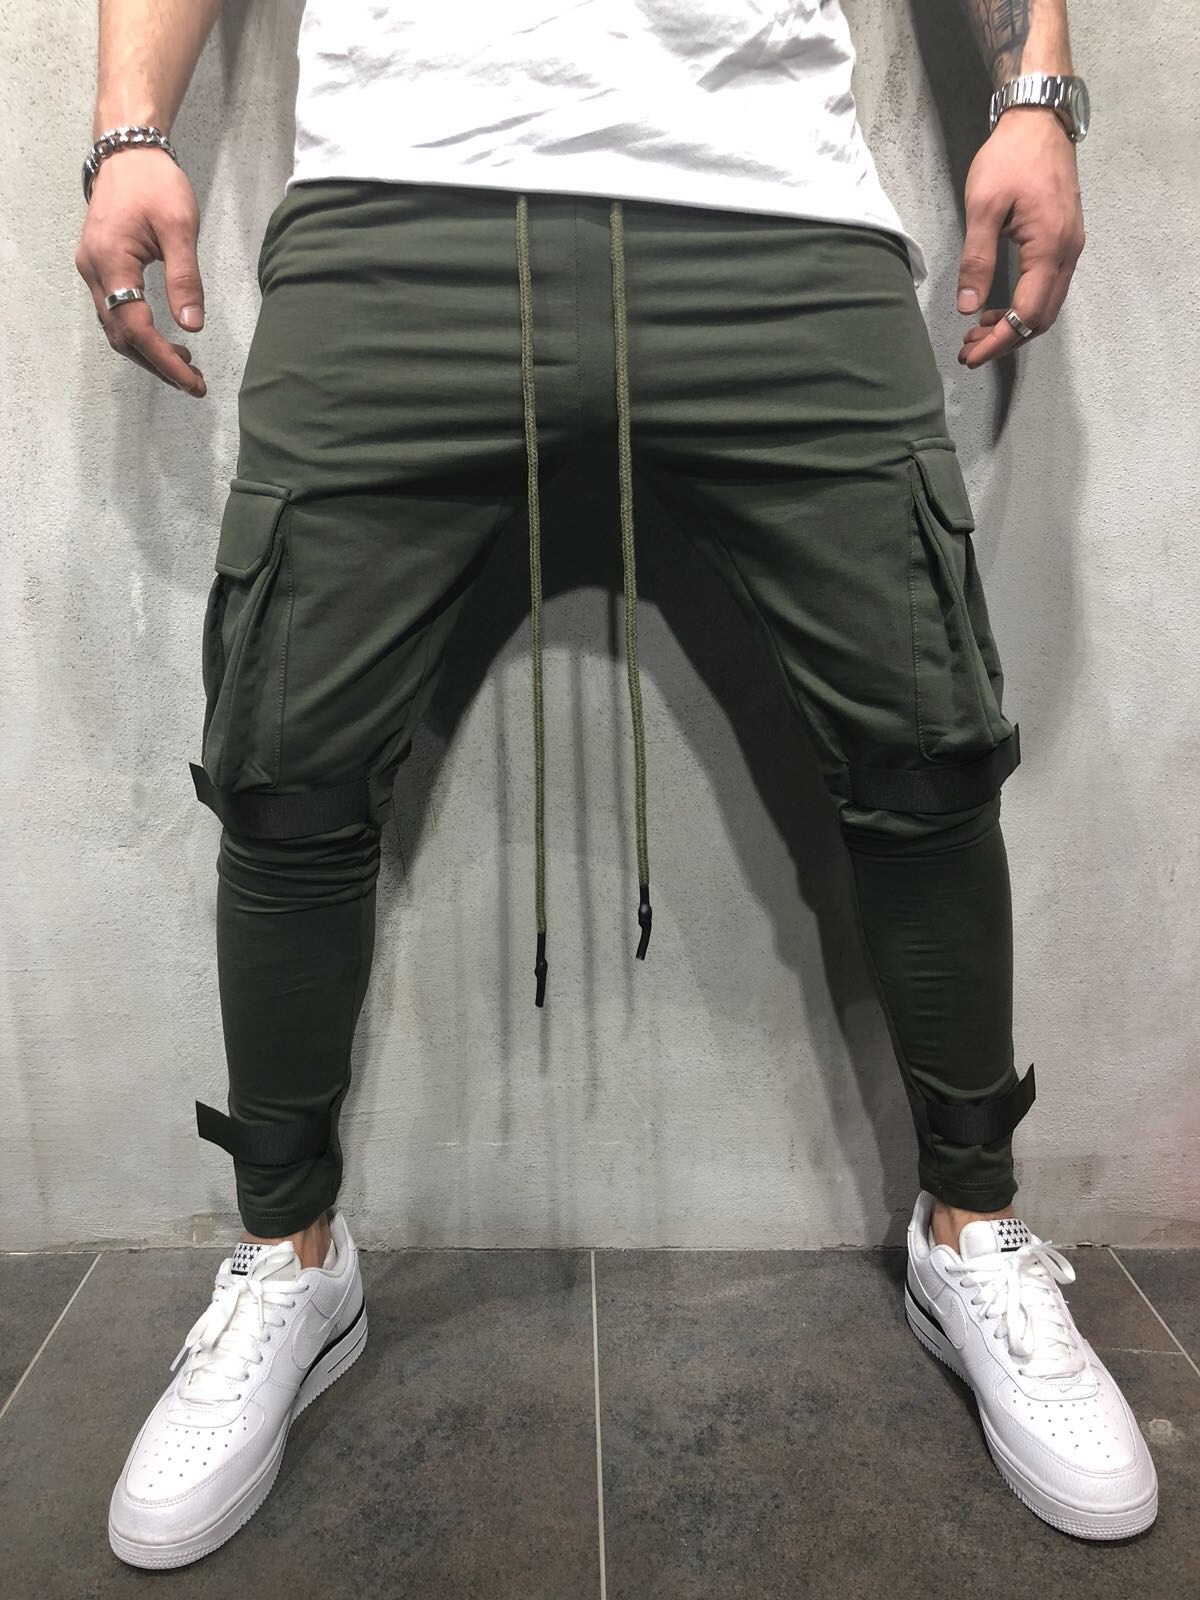 Spring And Autumn New Style Large Pocket Fitness Drawstring Top Skinny Pants Velcro Slim Fit Gymnastic Pants Men's